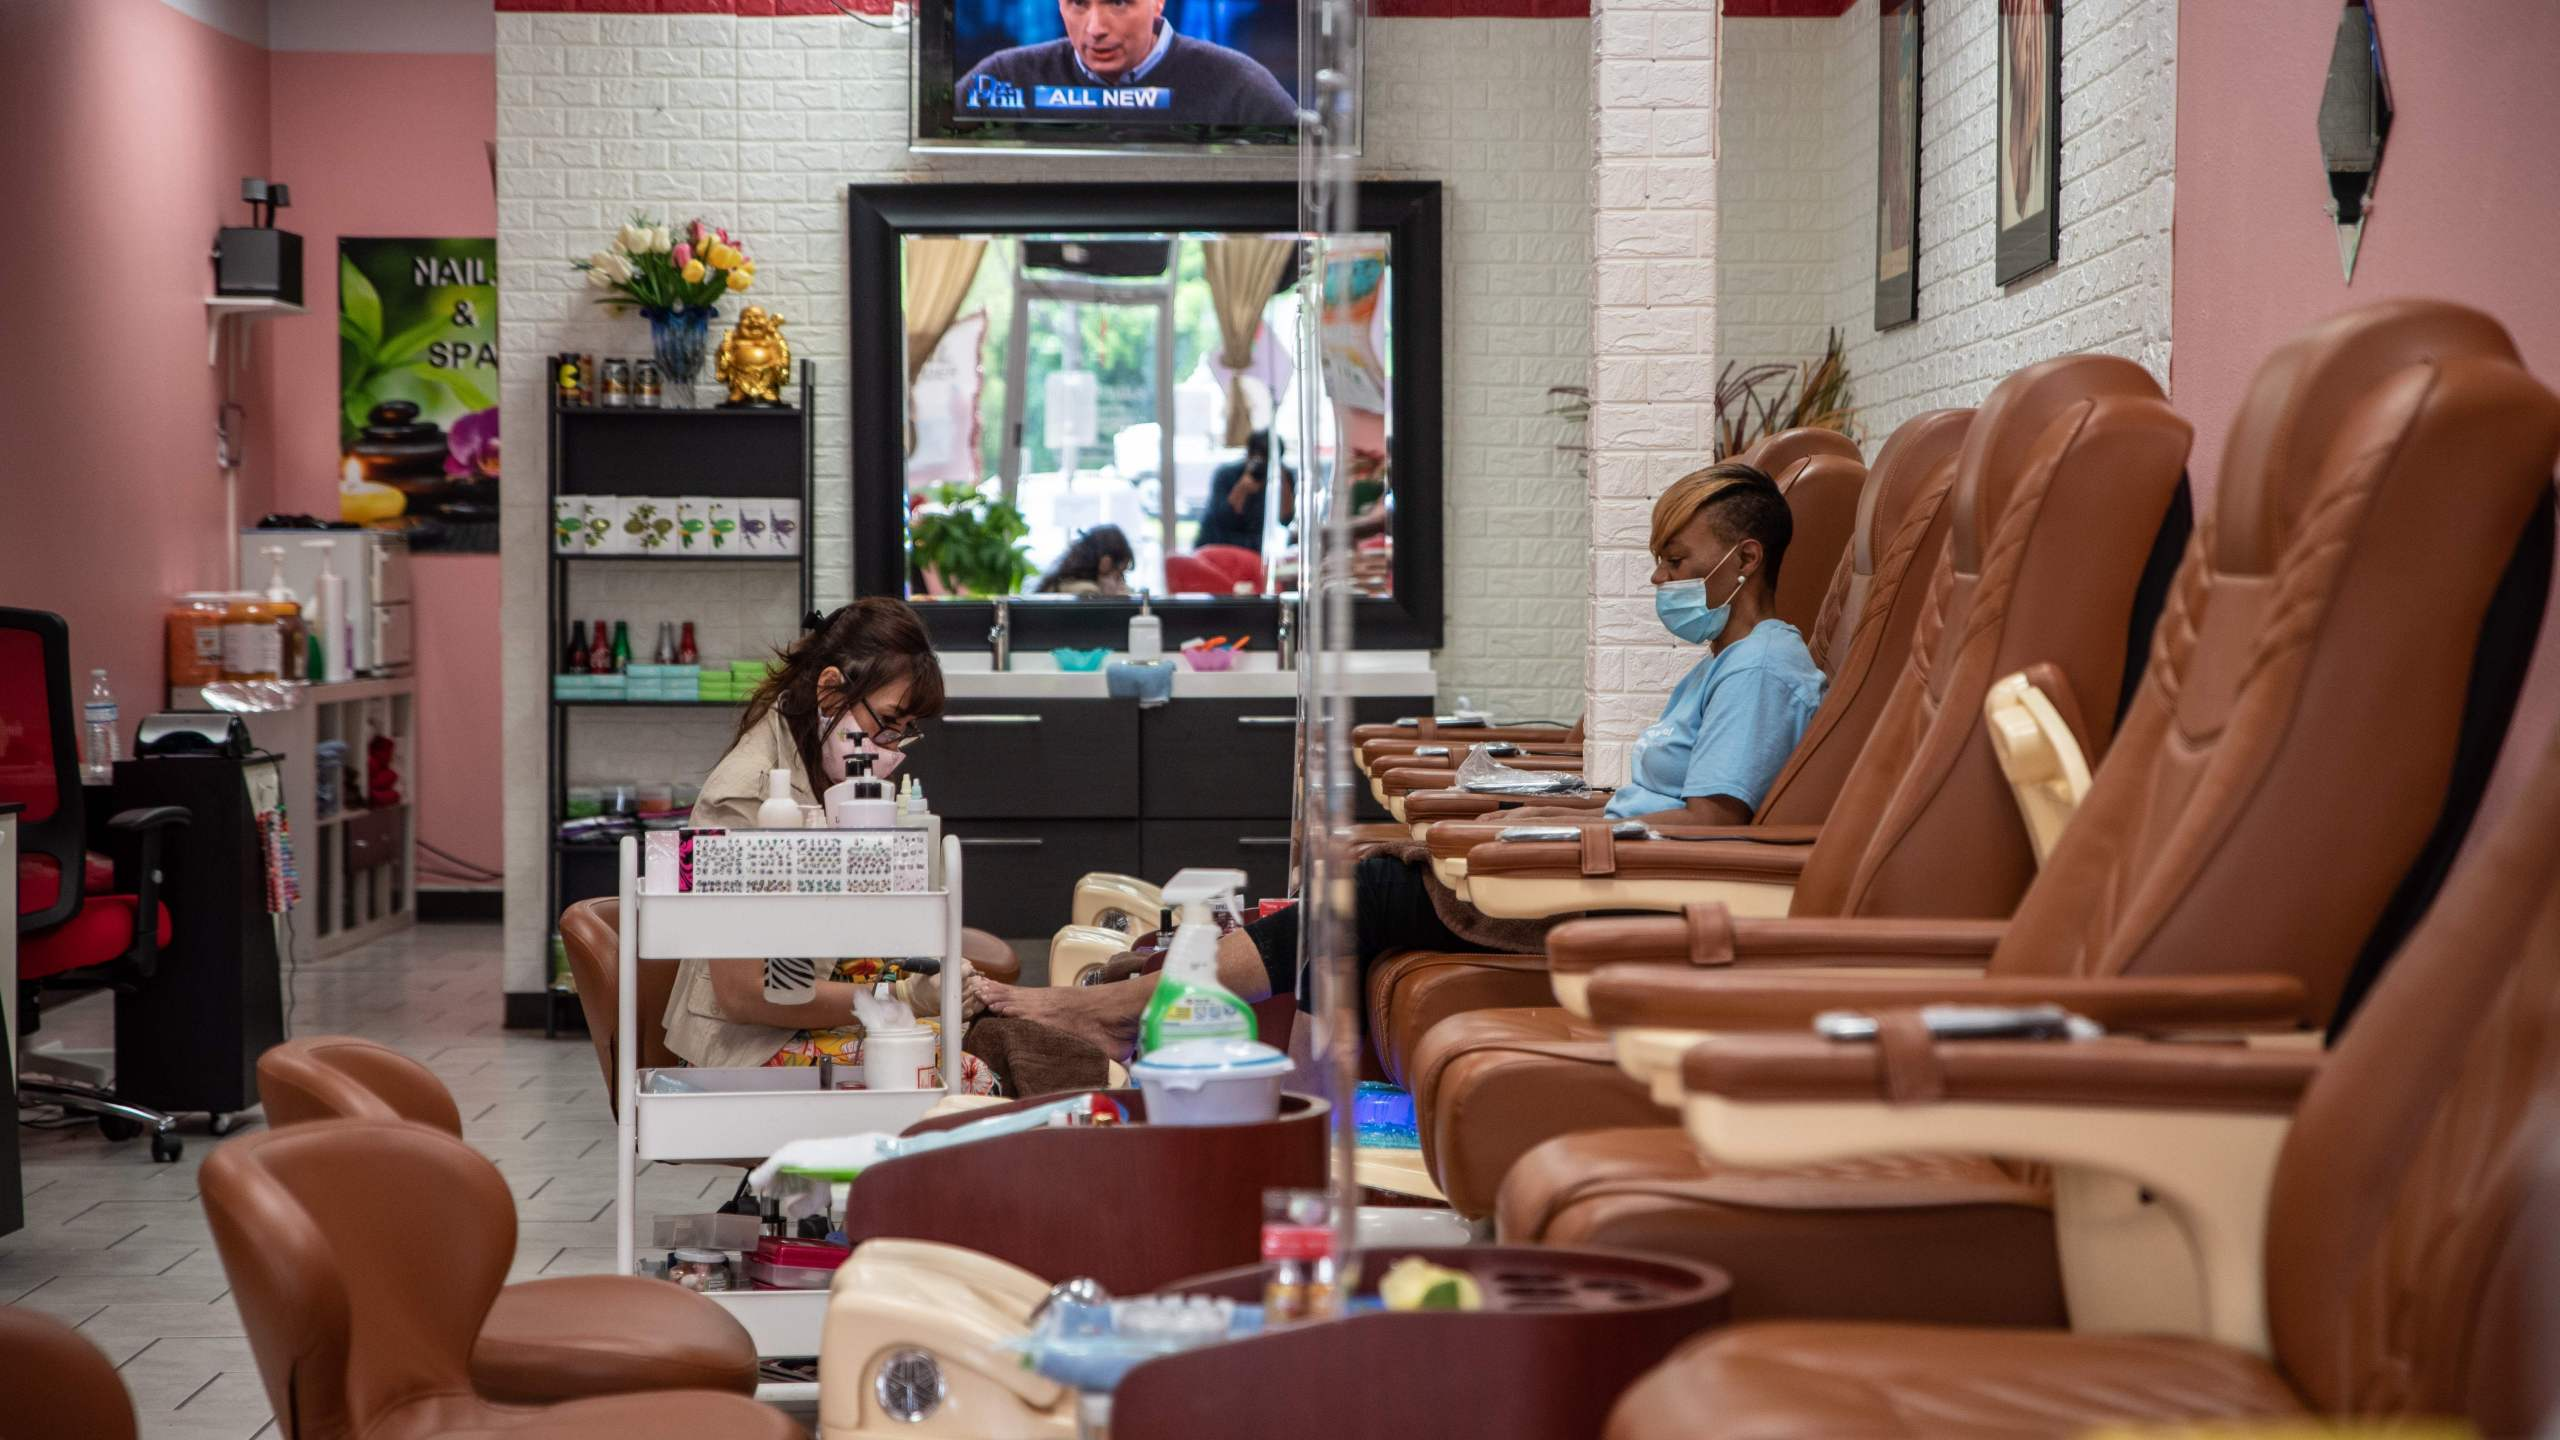 A worker paints a woman's nails at a nail salon amid the coronavirus pandemic in Austin, Texas, on May 8, 2020, following a slow reopening of the economy. (Sergio Flores / AFP / Getty Images)